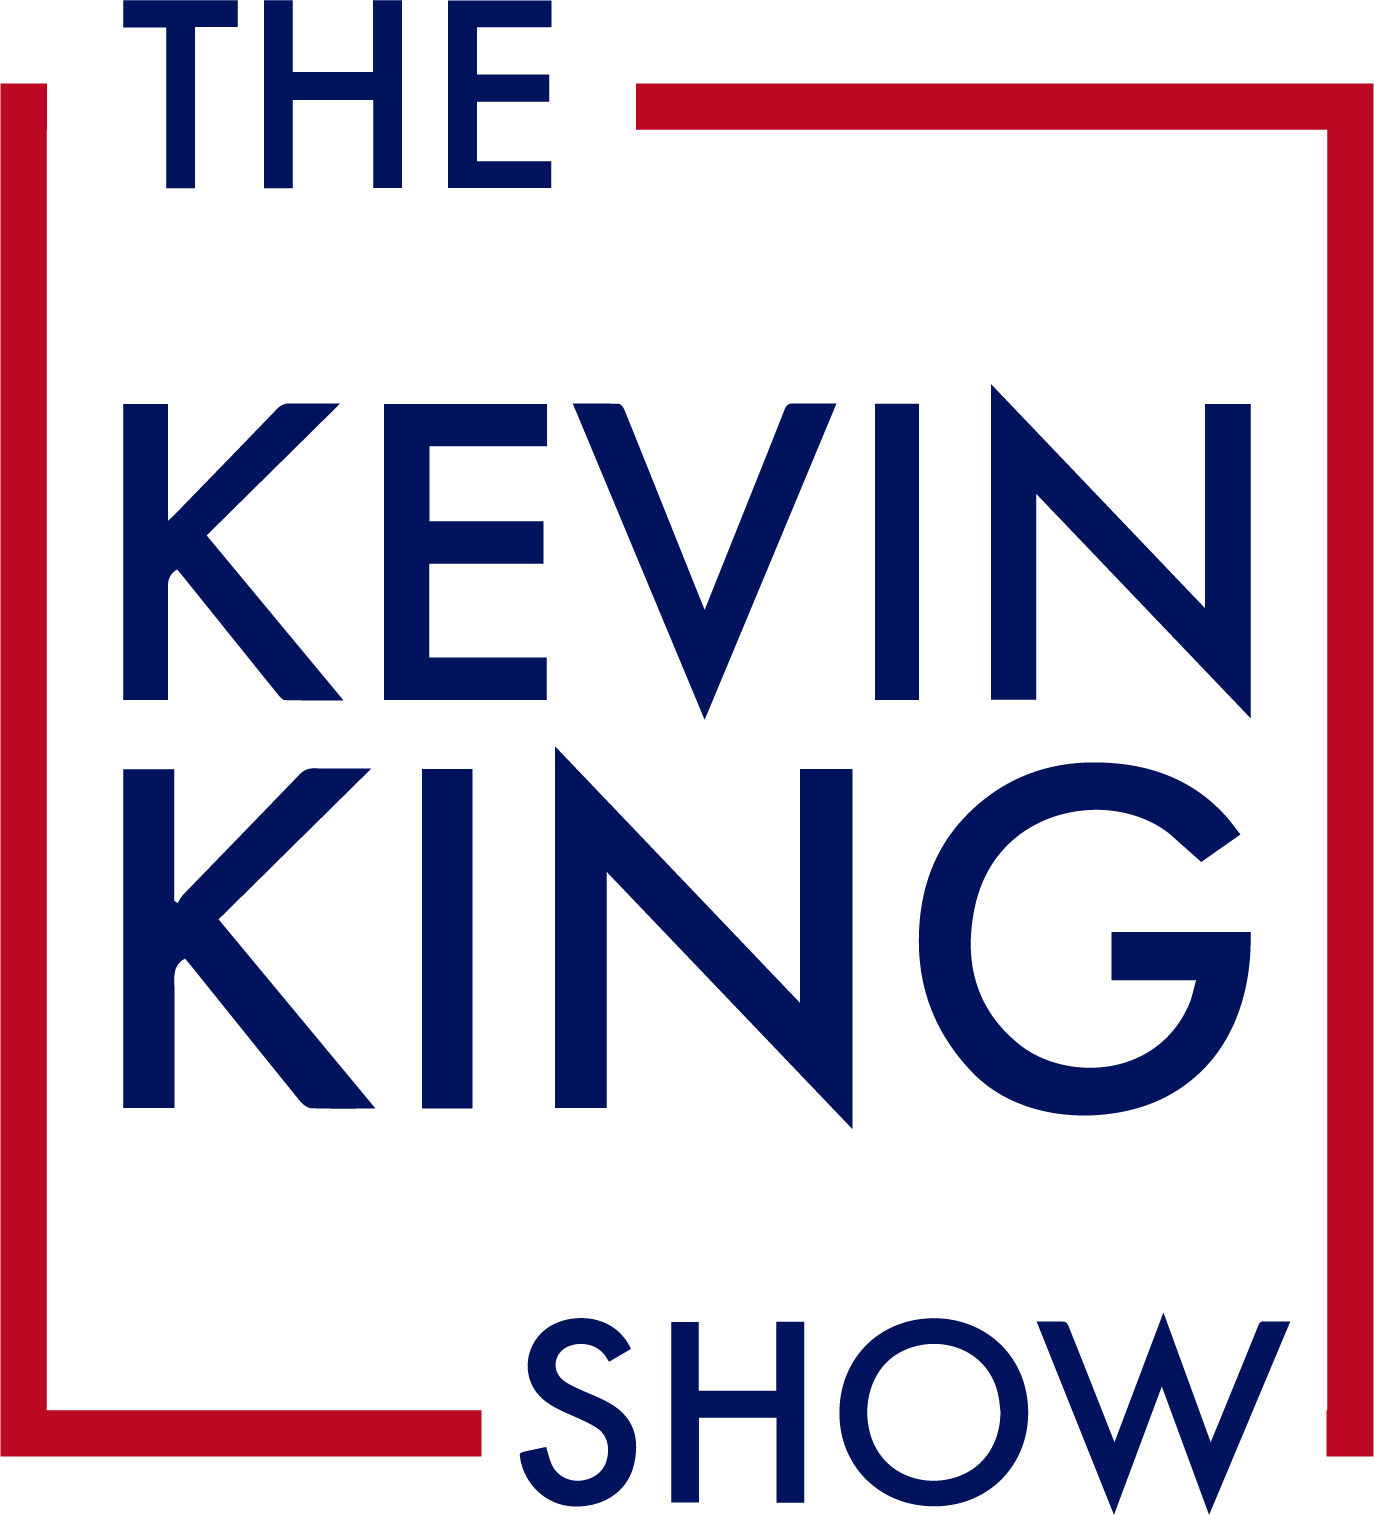 The Kevin King Show - Episode 1